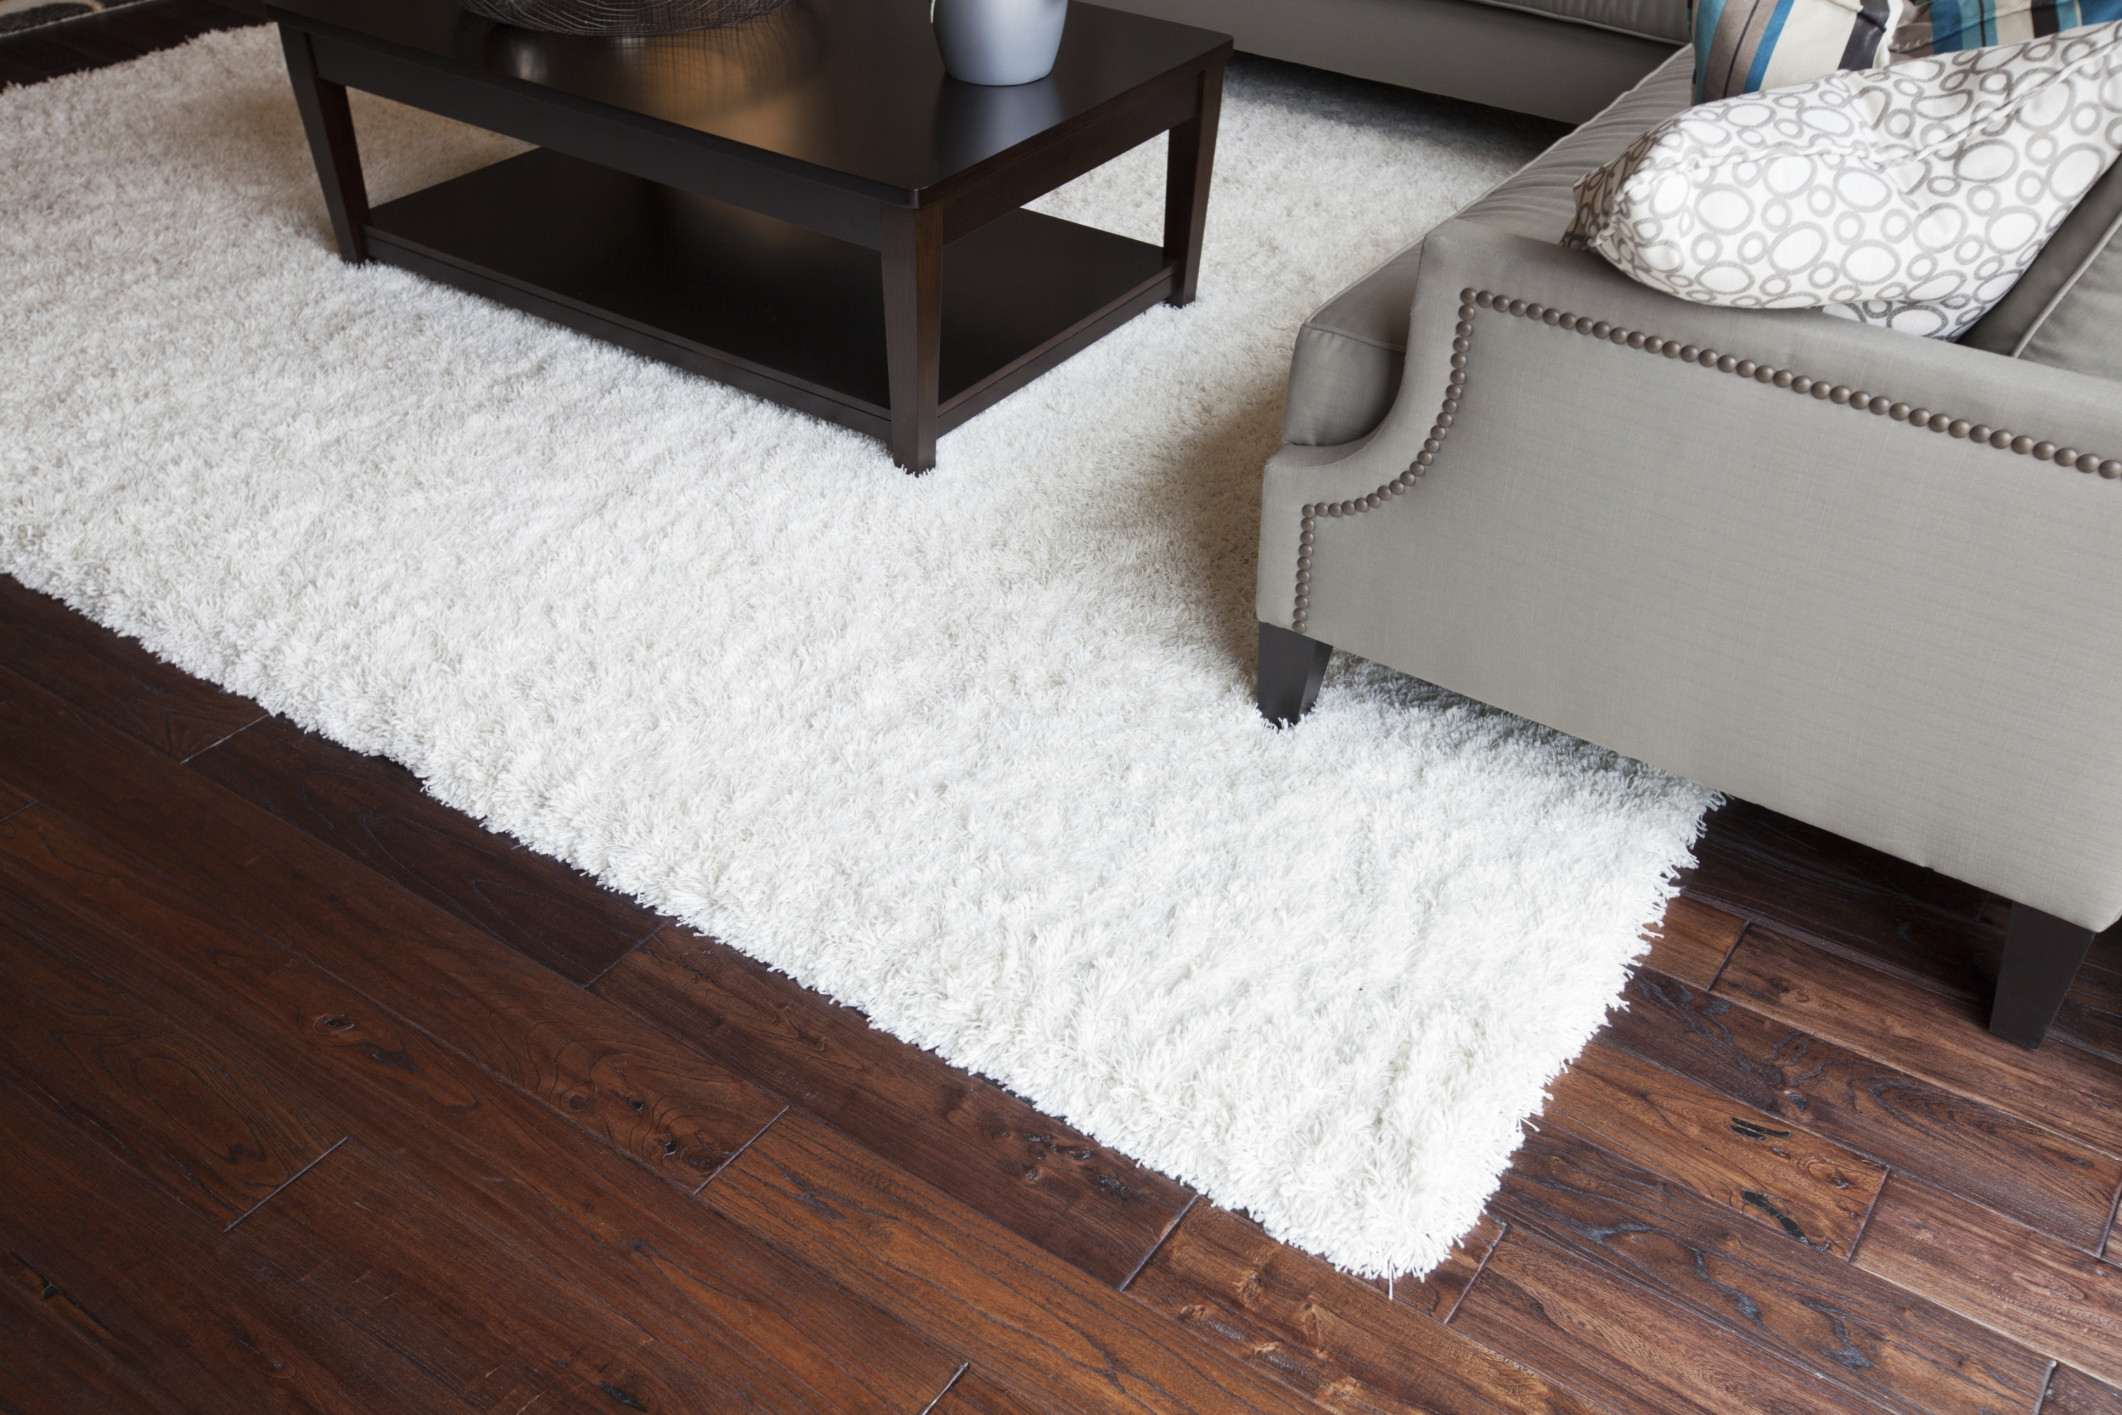 Best Carpet For Wood Floors9 things youre doing to ruin your hardwood floors without even